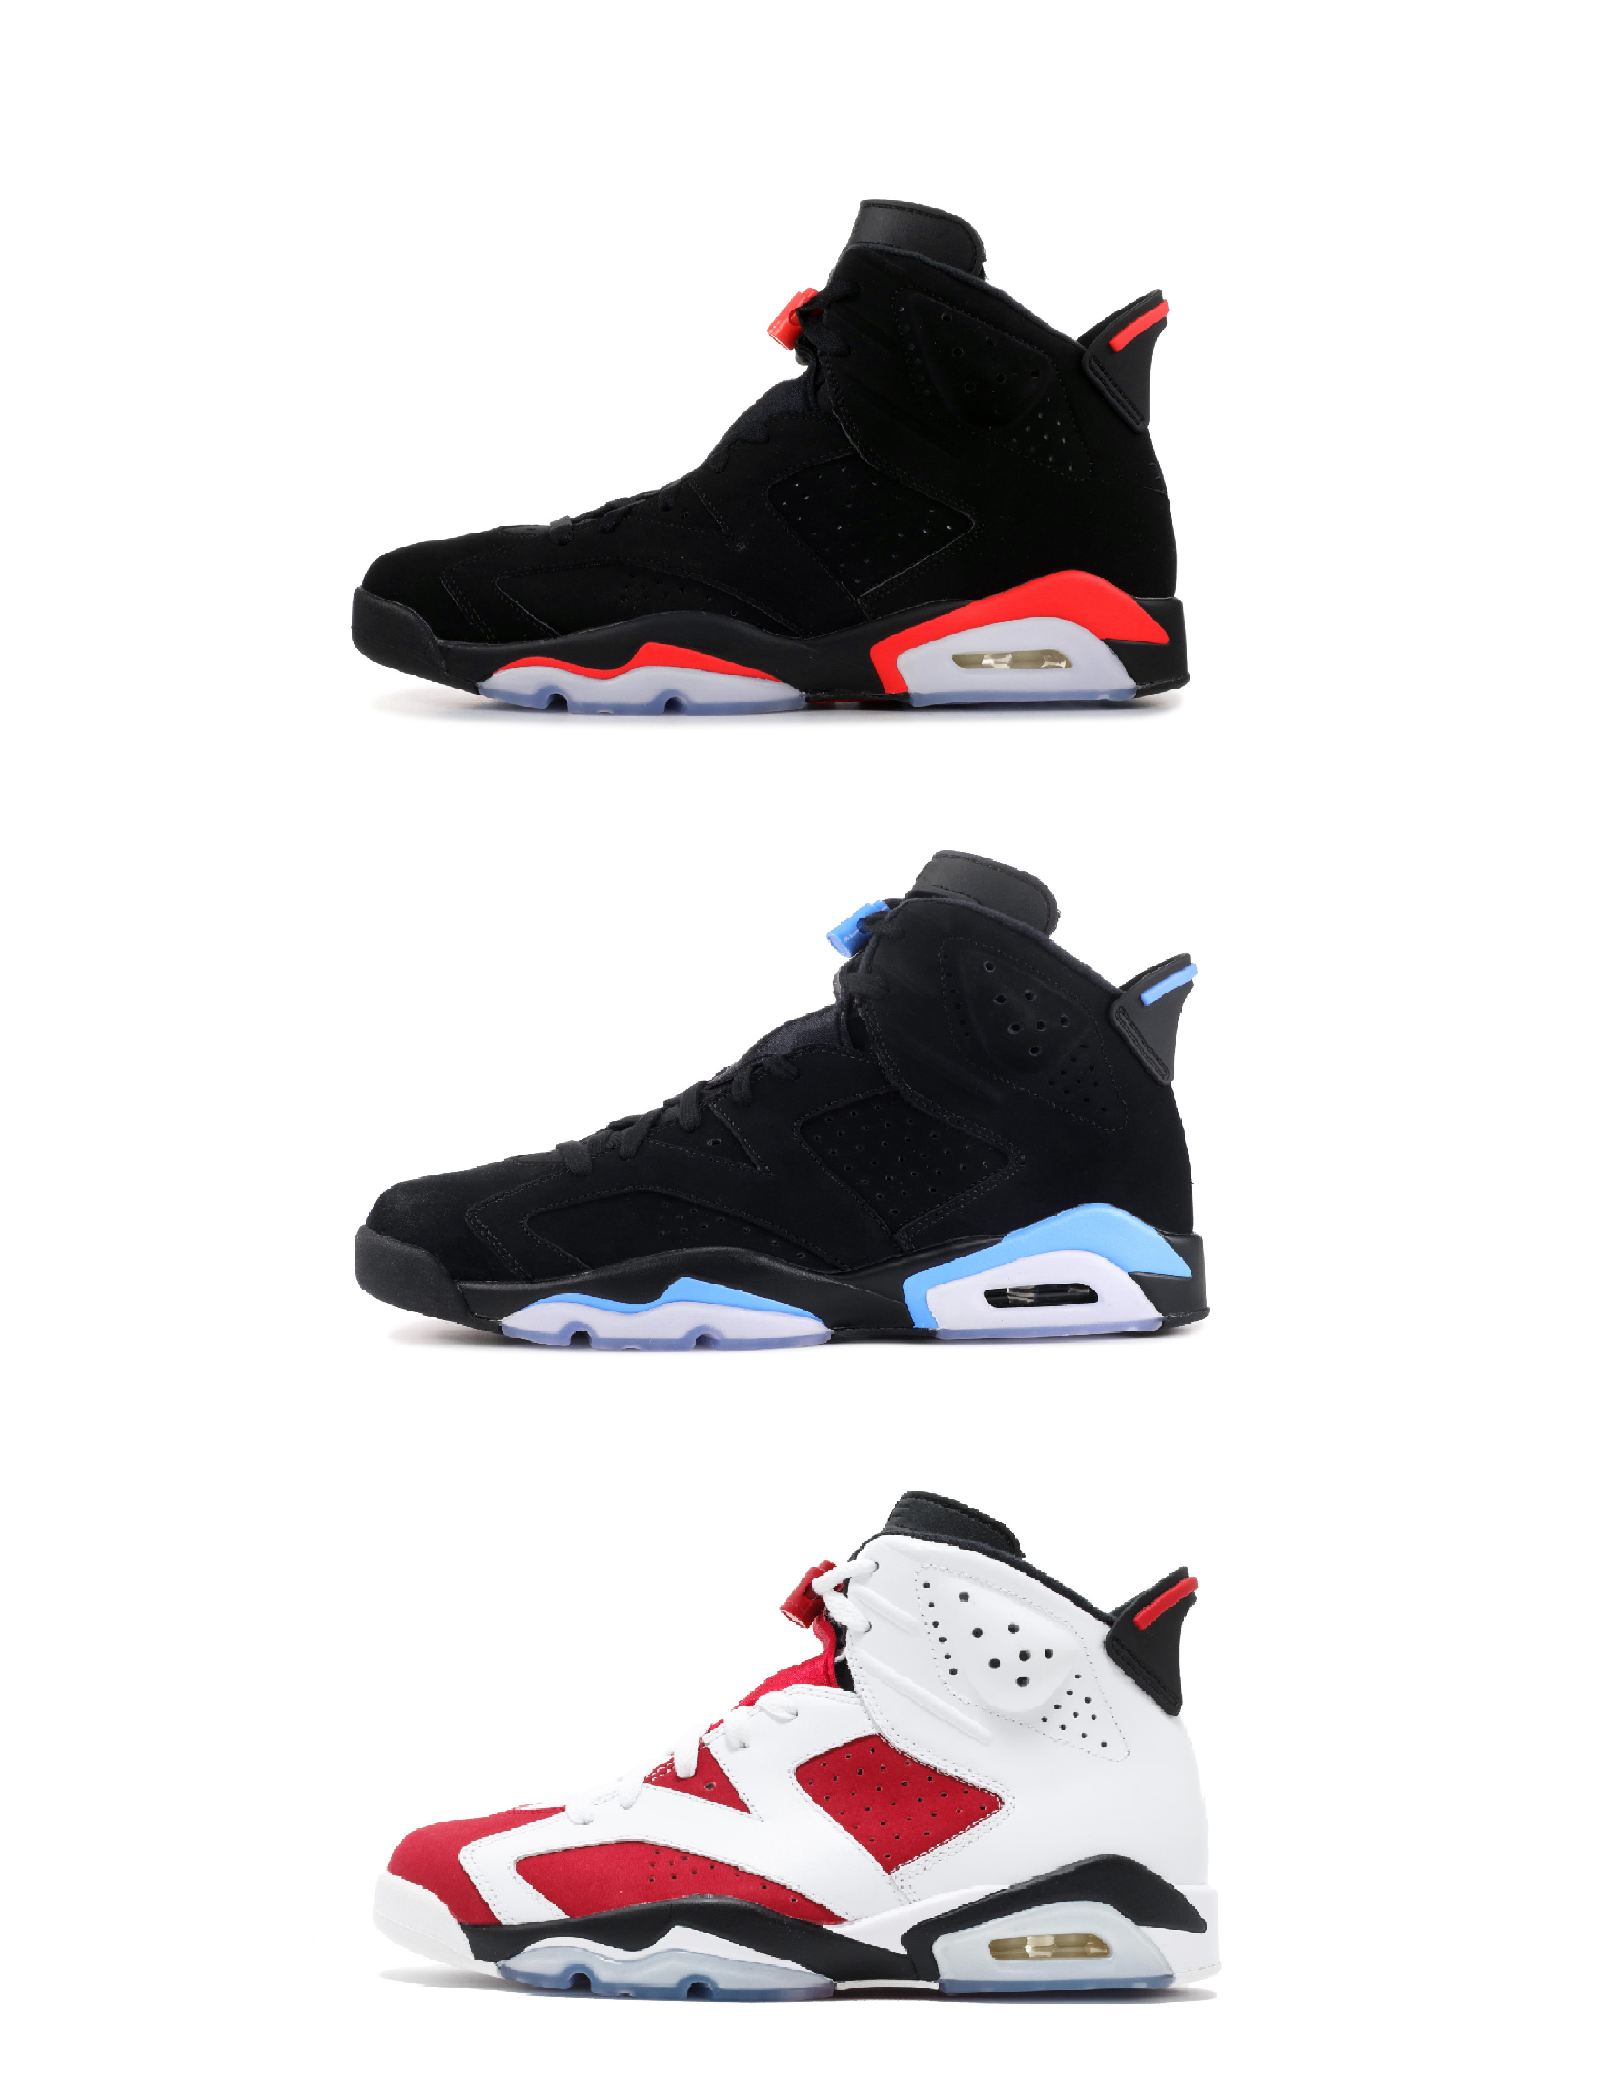 more photos e1cb6 10ac0 6 Carmine Basketball Shoes Classic 6s UNC Black Blue White Infrared Low  Chrome Women Men Sport Blue Red Oreo Alternate Oreo Black Cat Jordans Shoes  Sport ...